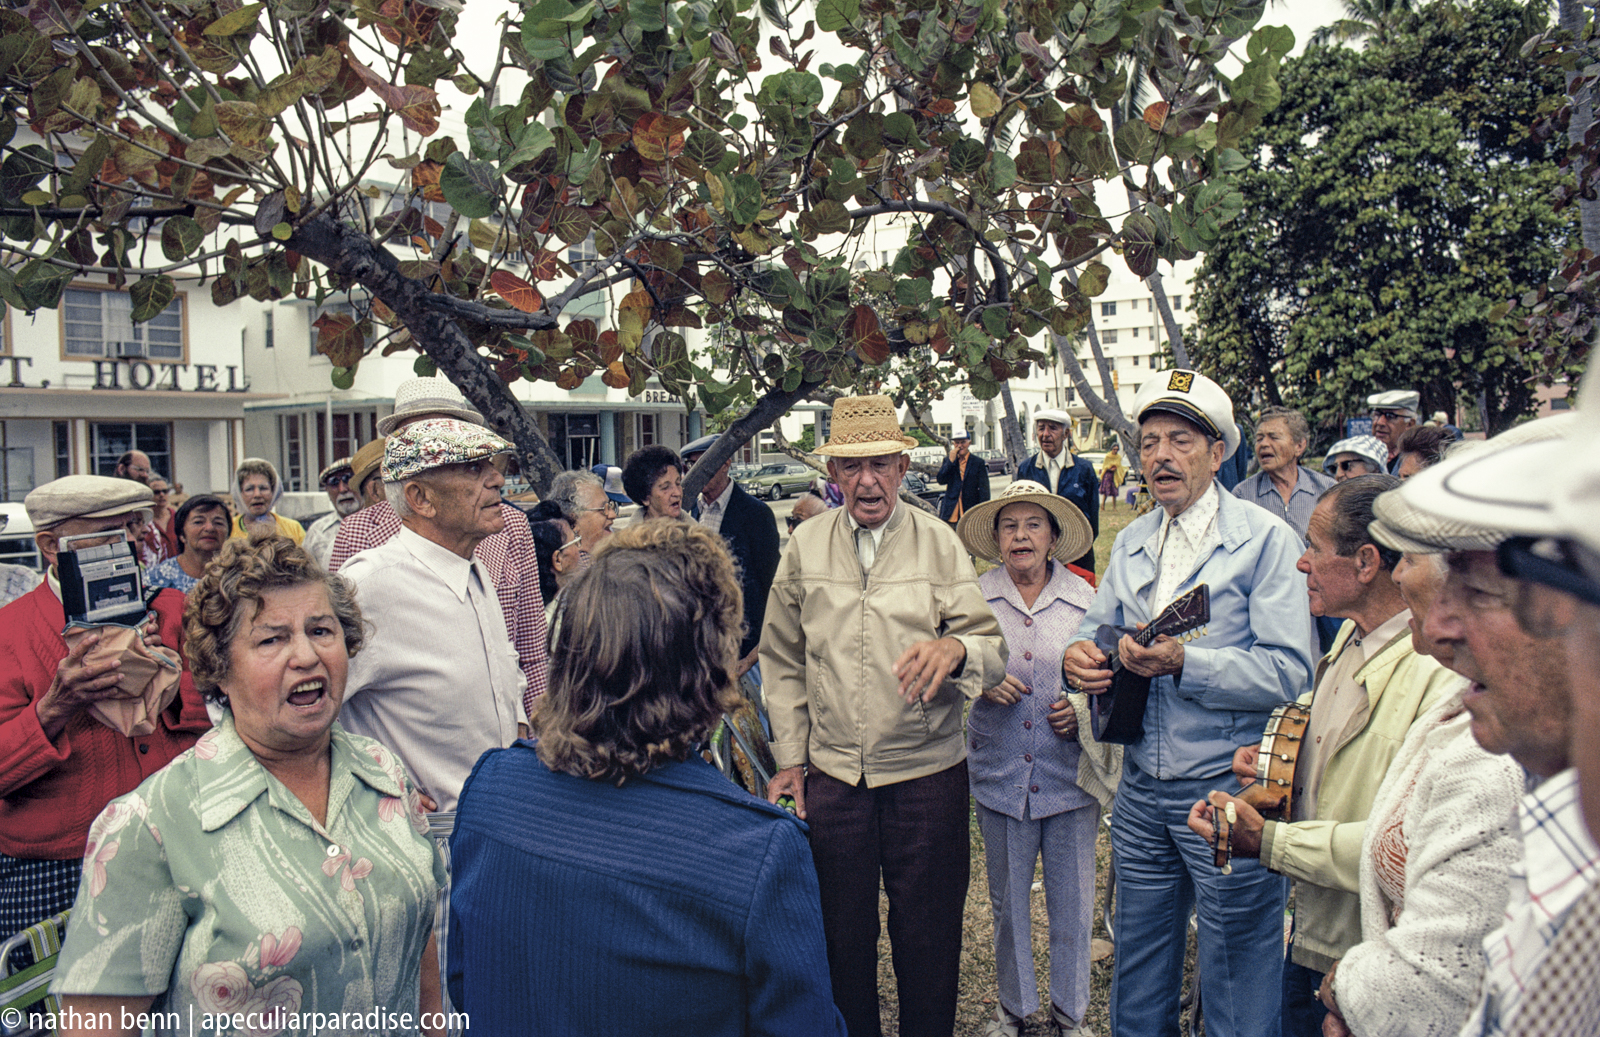 Elderly Jews singing Yiddish, Polish, and Hebrew language music and songs on South Beach